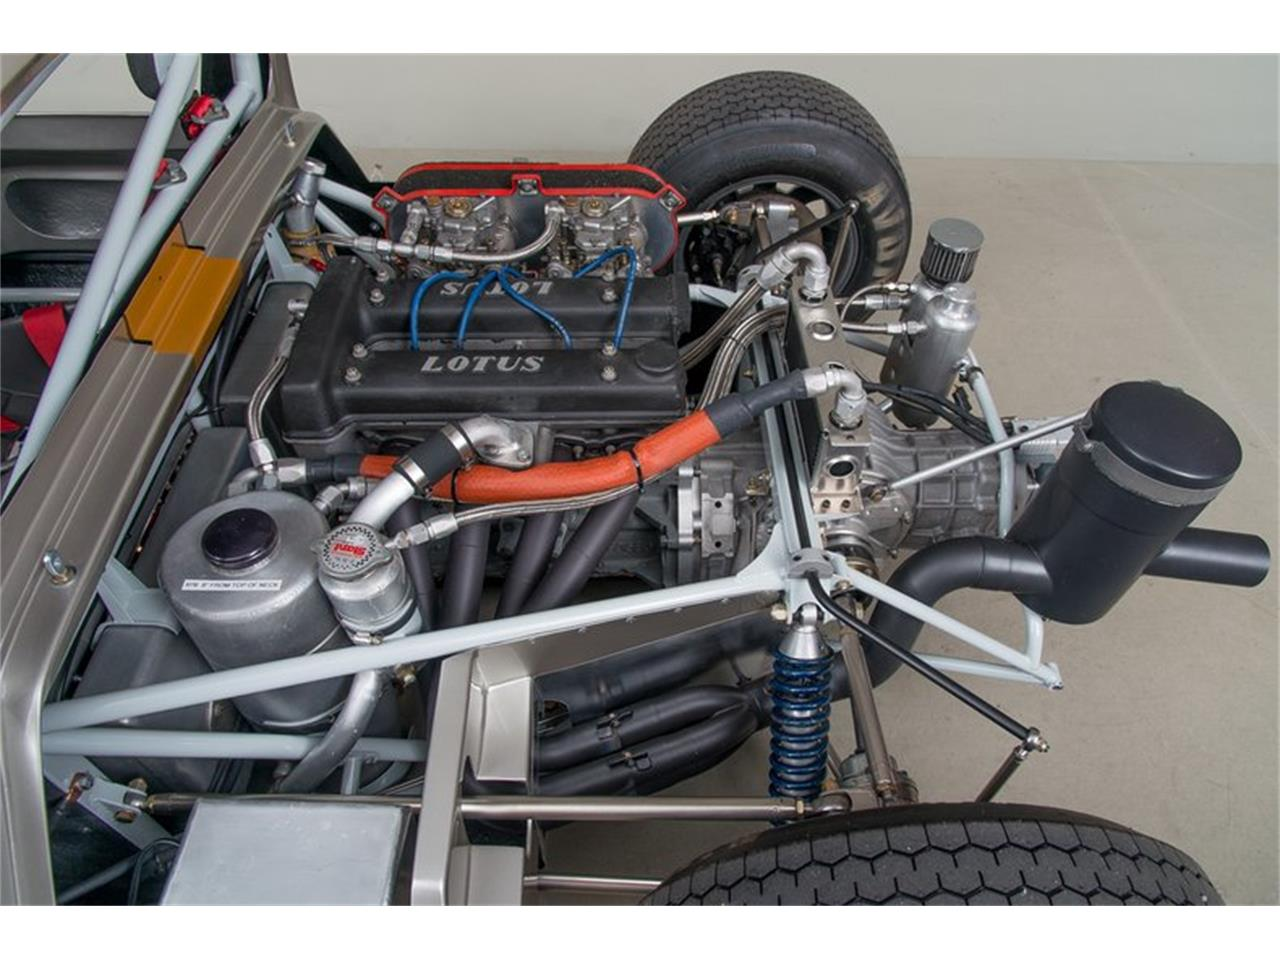 1967 Ginetta G12 for sale in Scotts Valley, CA – photo 36